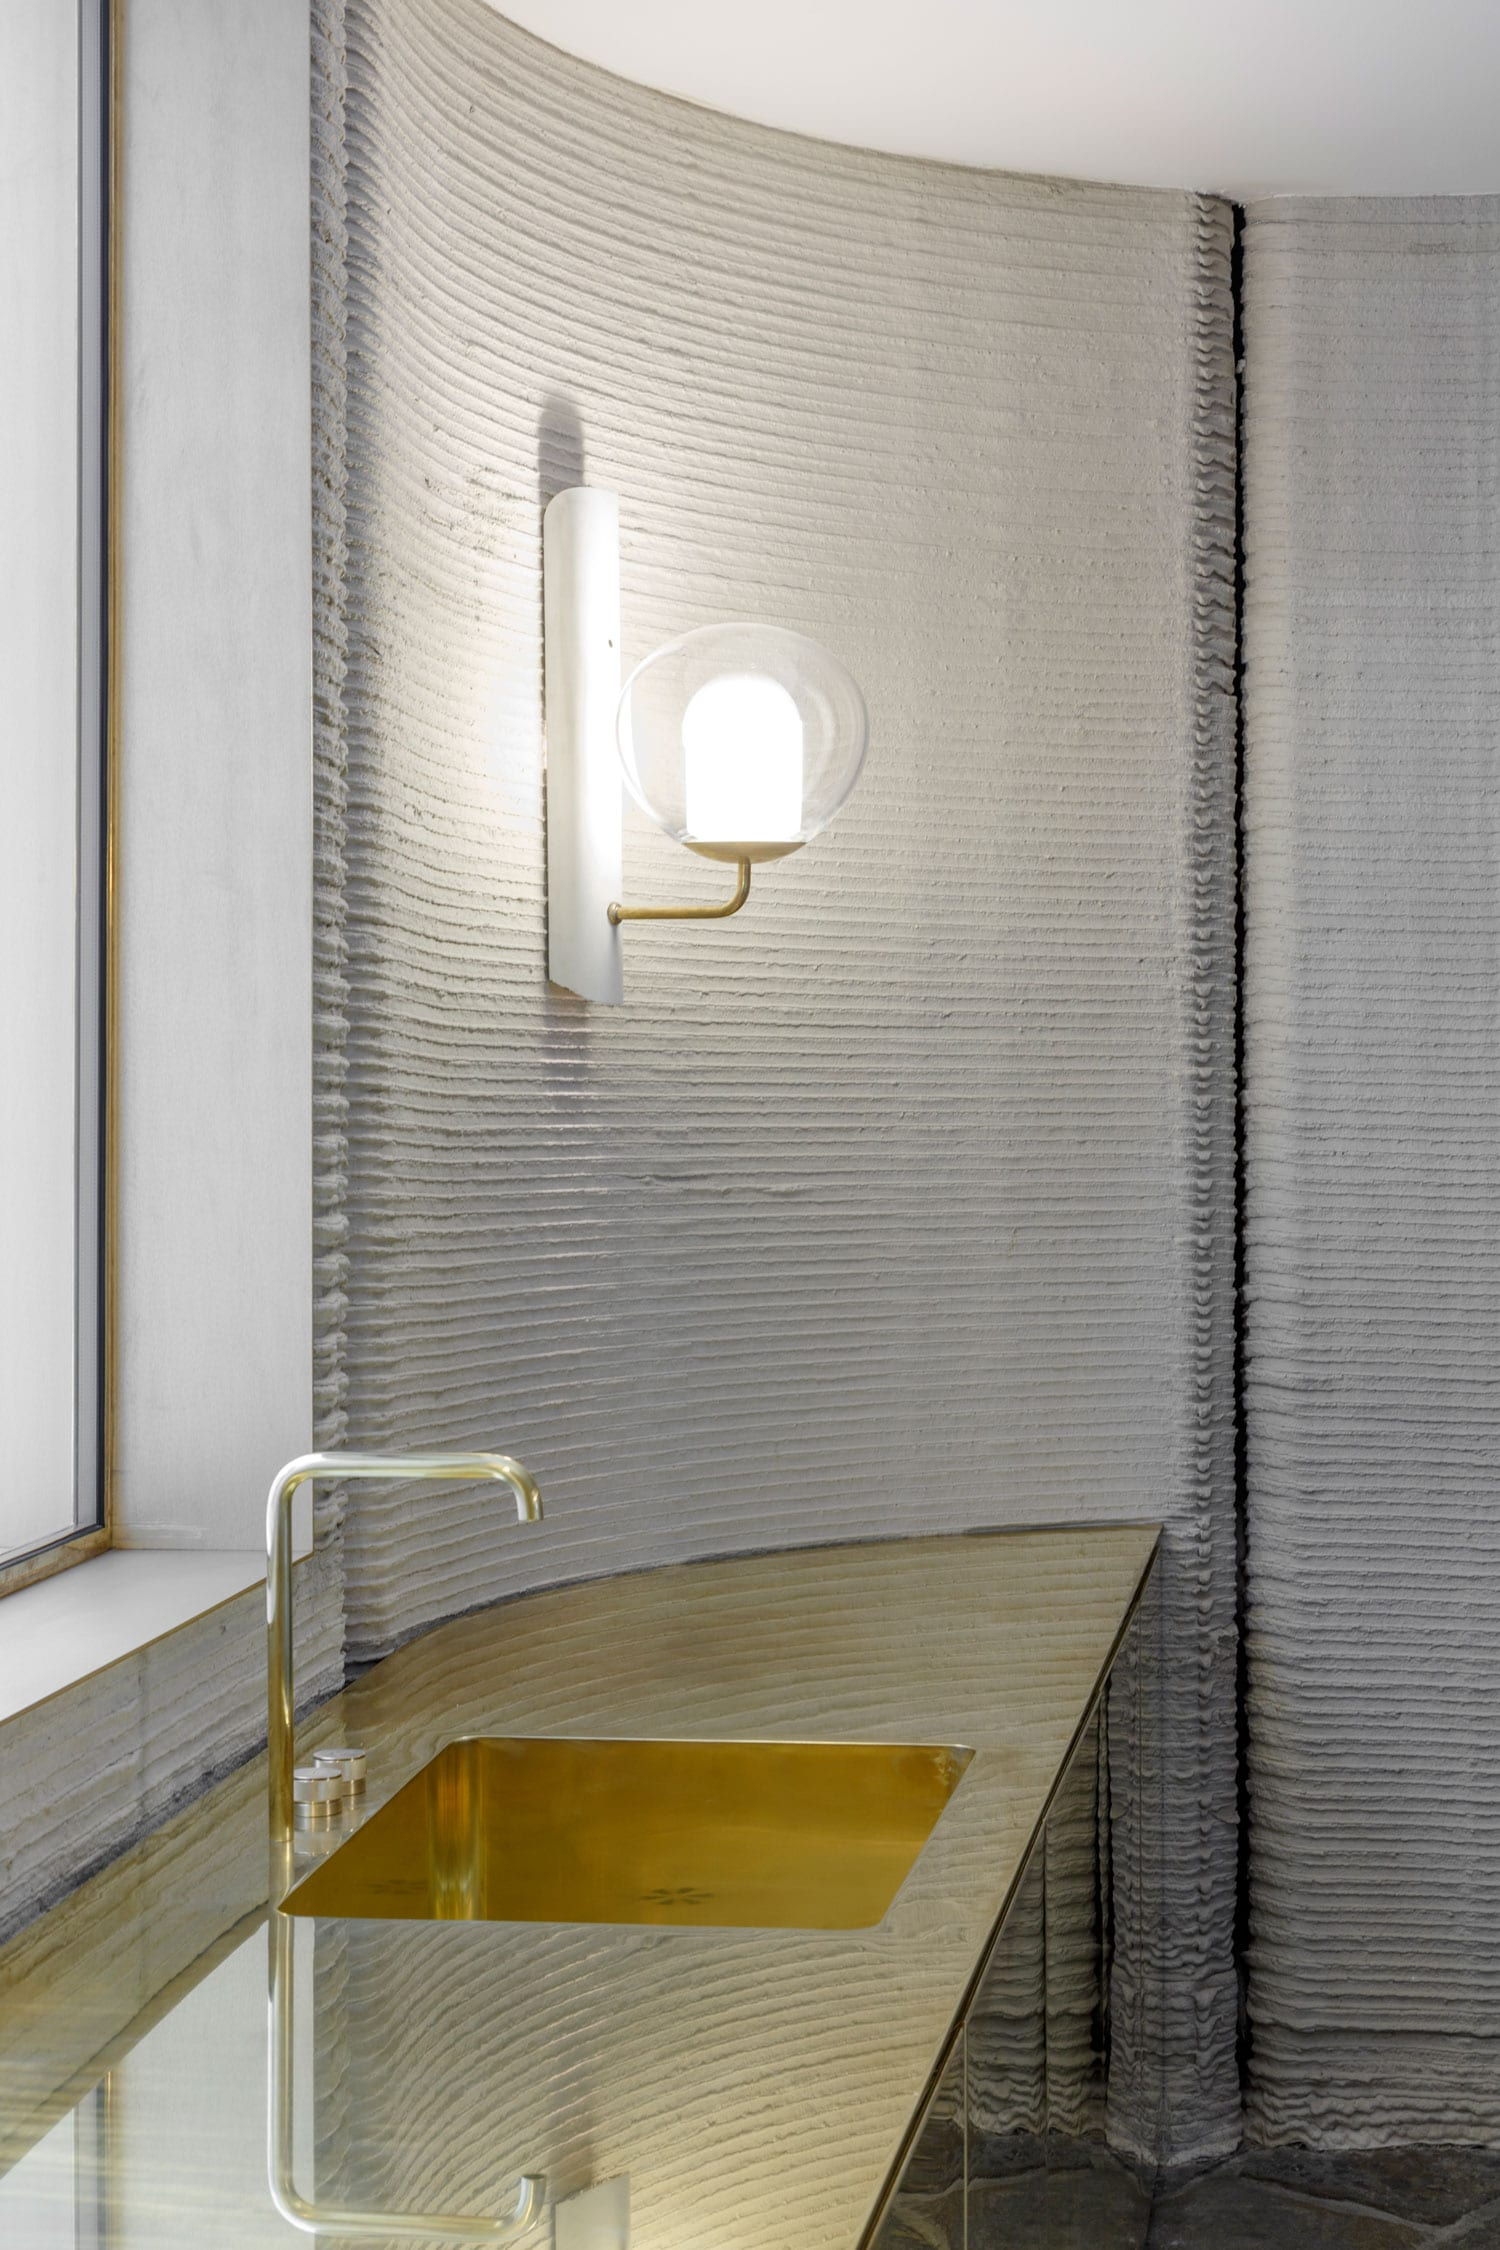 3D Printed House by Massamiliano Locatelli's CLS Architetti Revealed in Milan   Yellowtrace